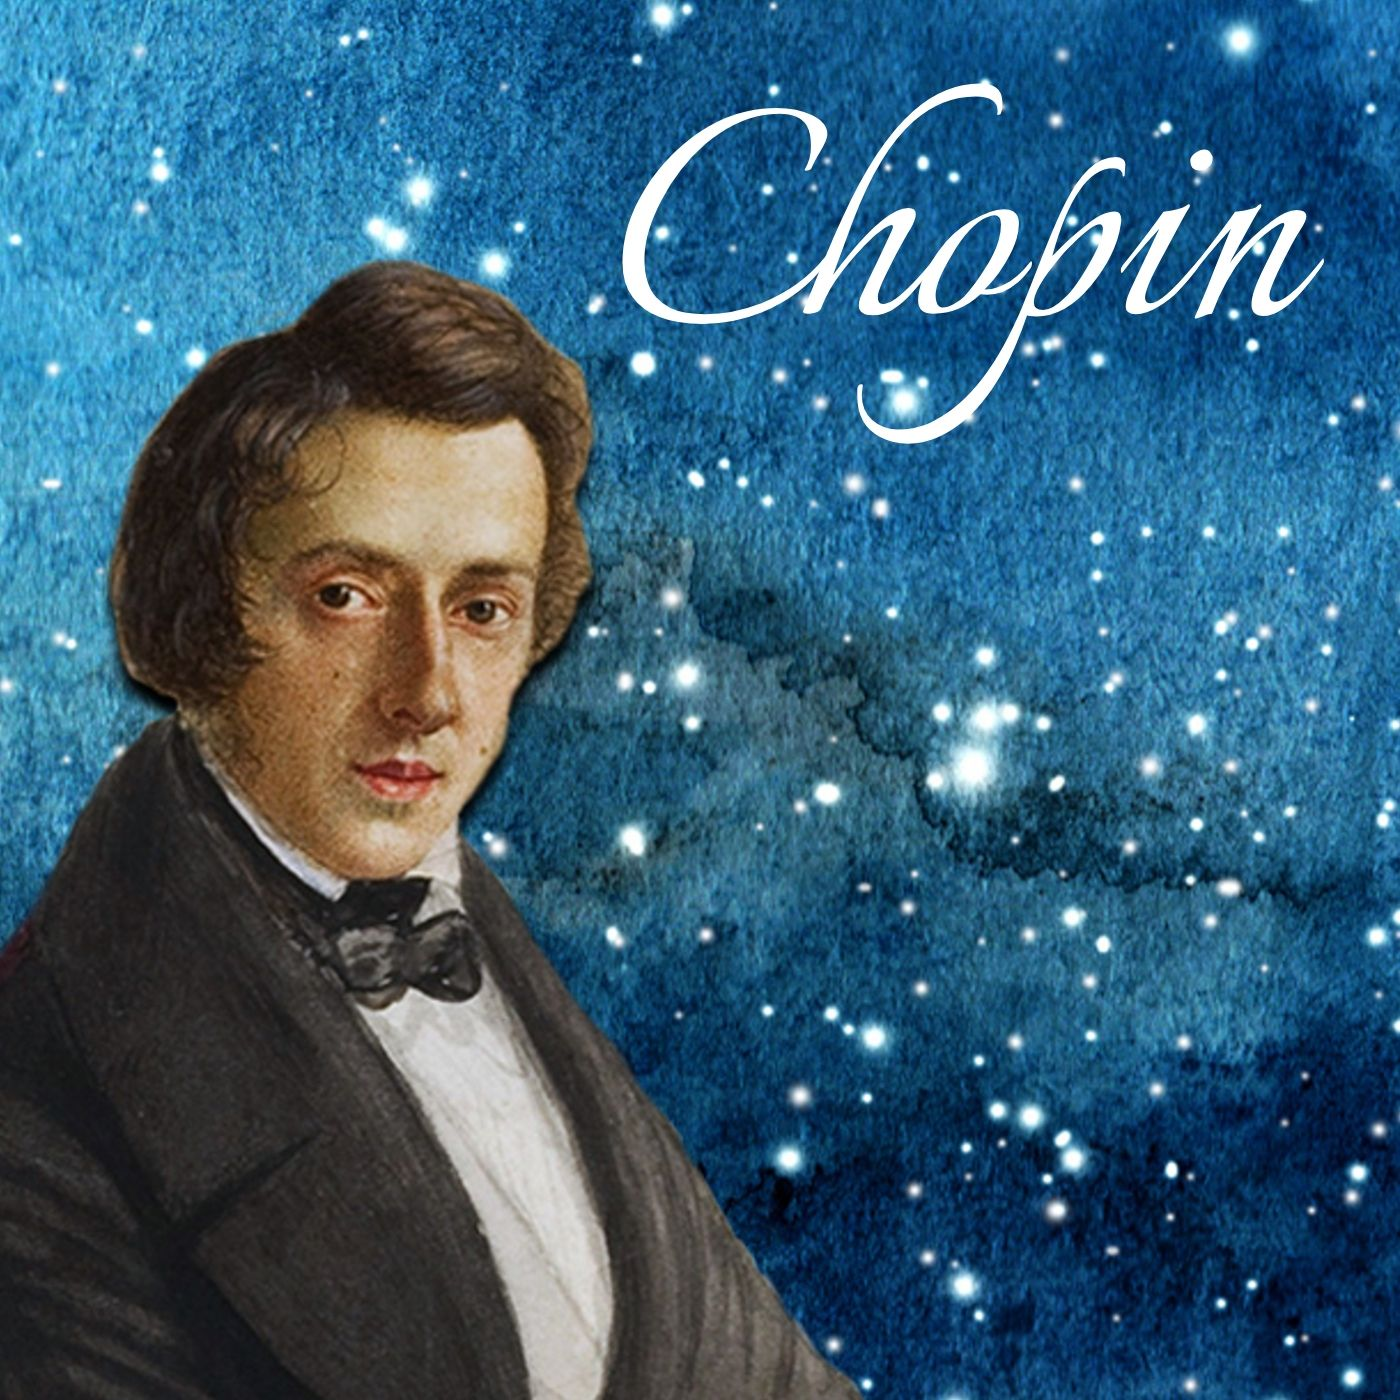 3 Hours Chopin for Studying, Concentration, Relaxation